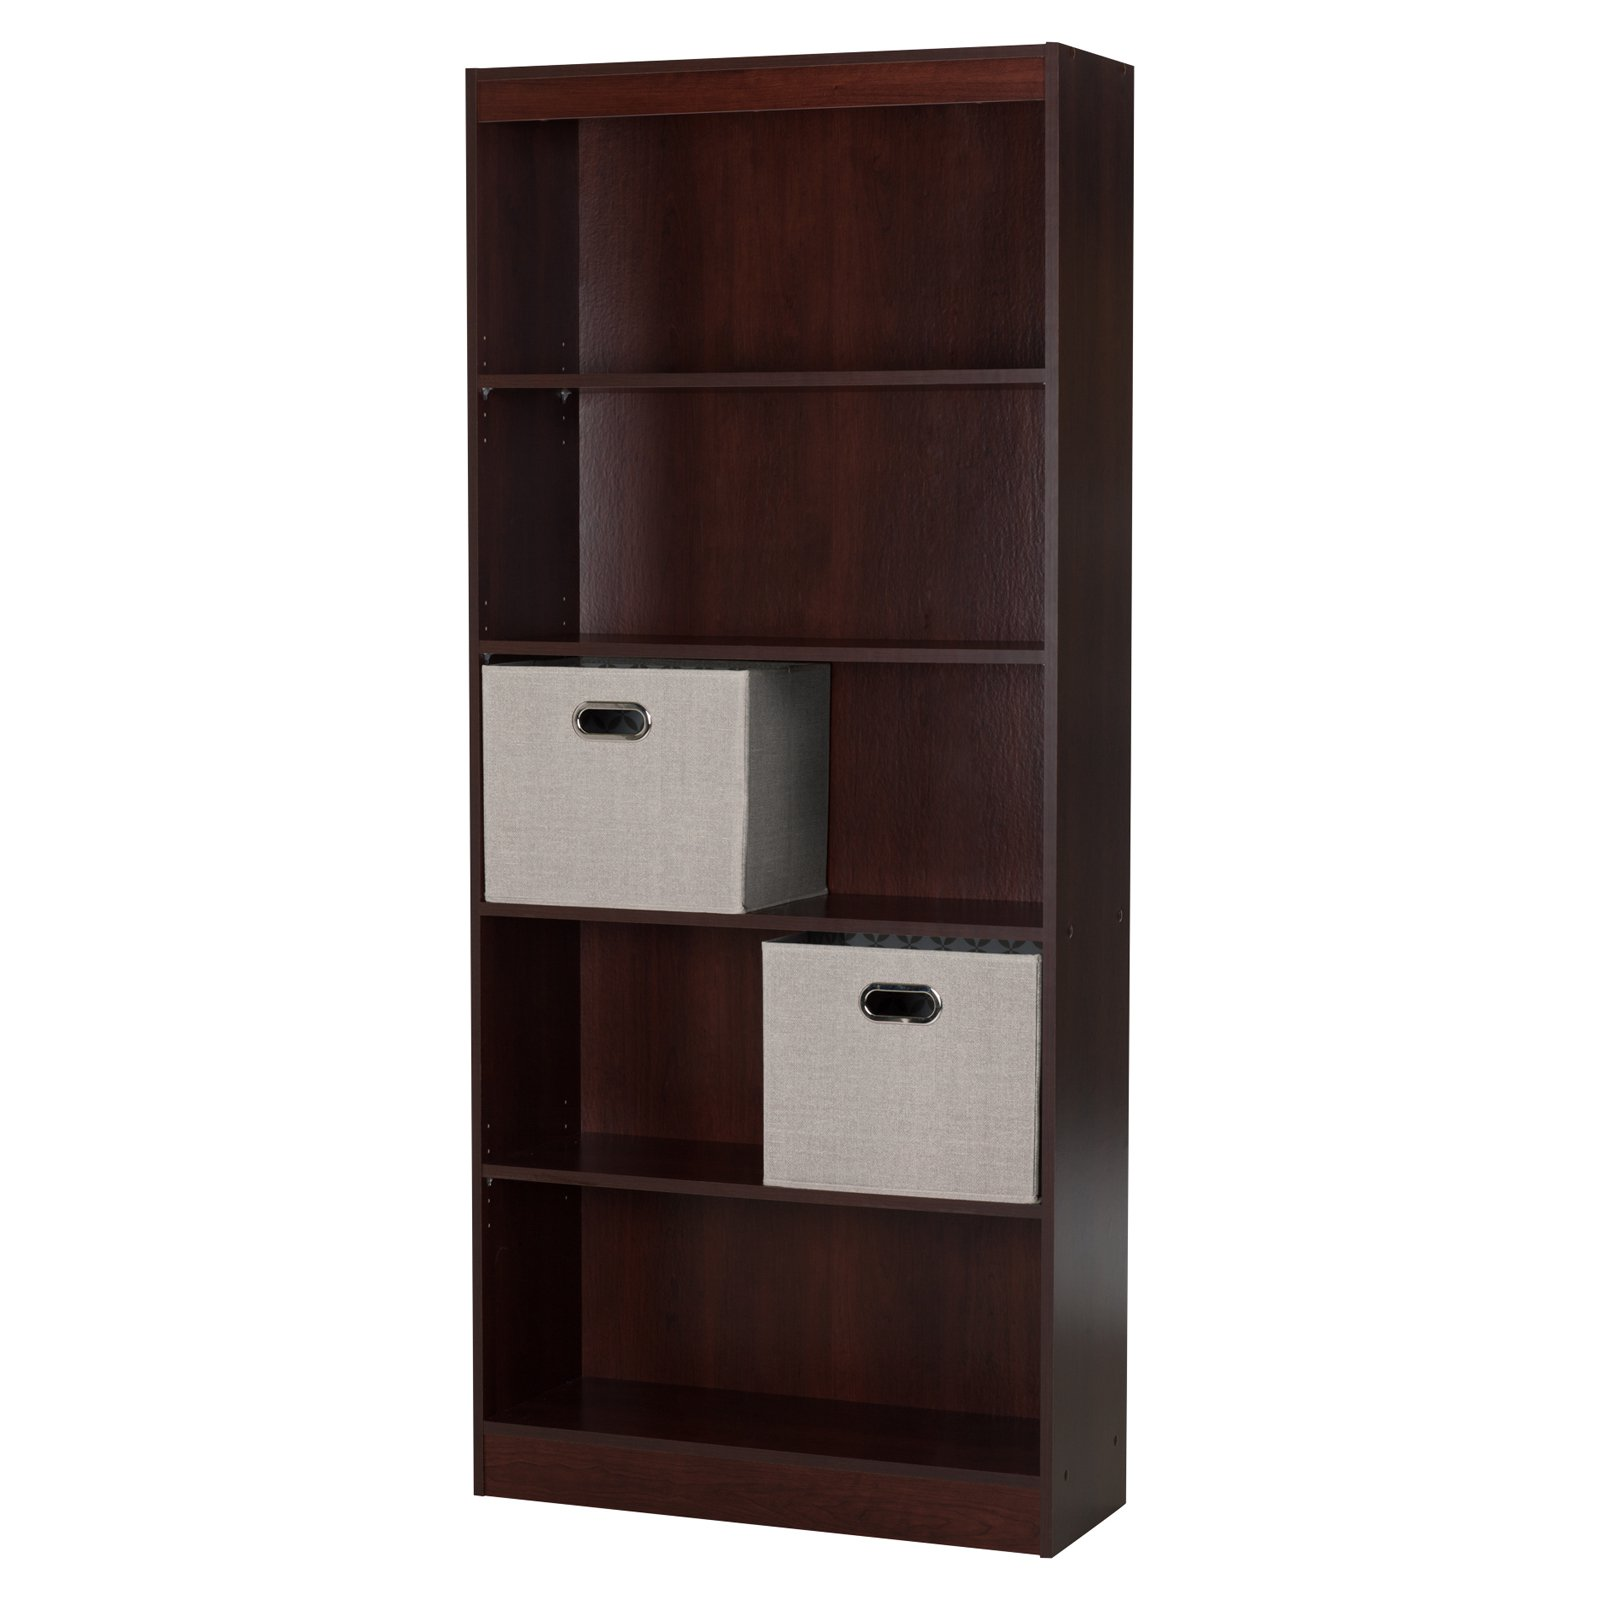 Axess 5 Shelf Bookcase with 2 Fabric Storage Baskets by South Shore by South Shore